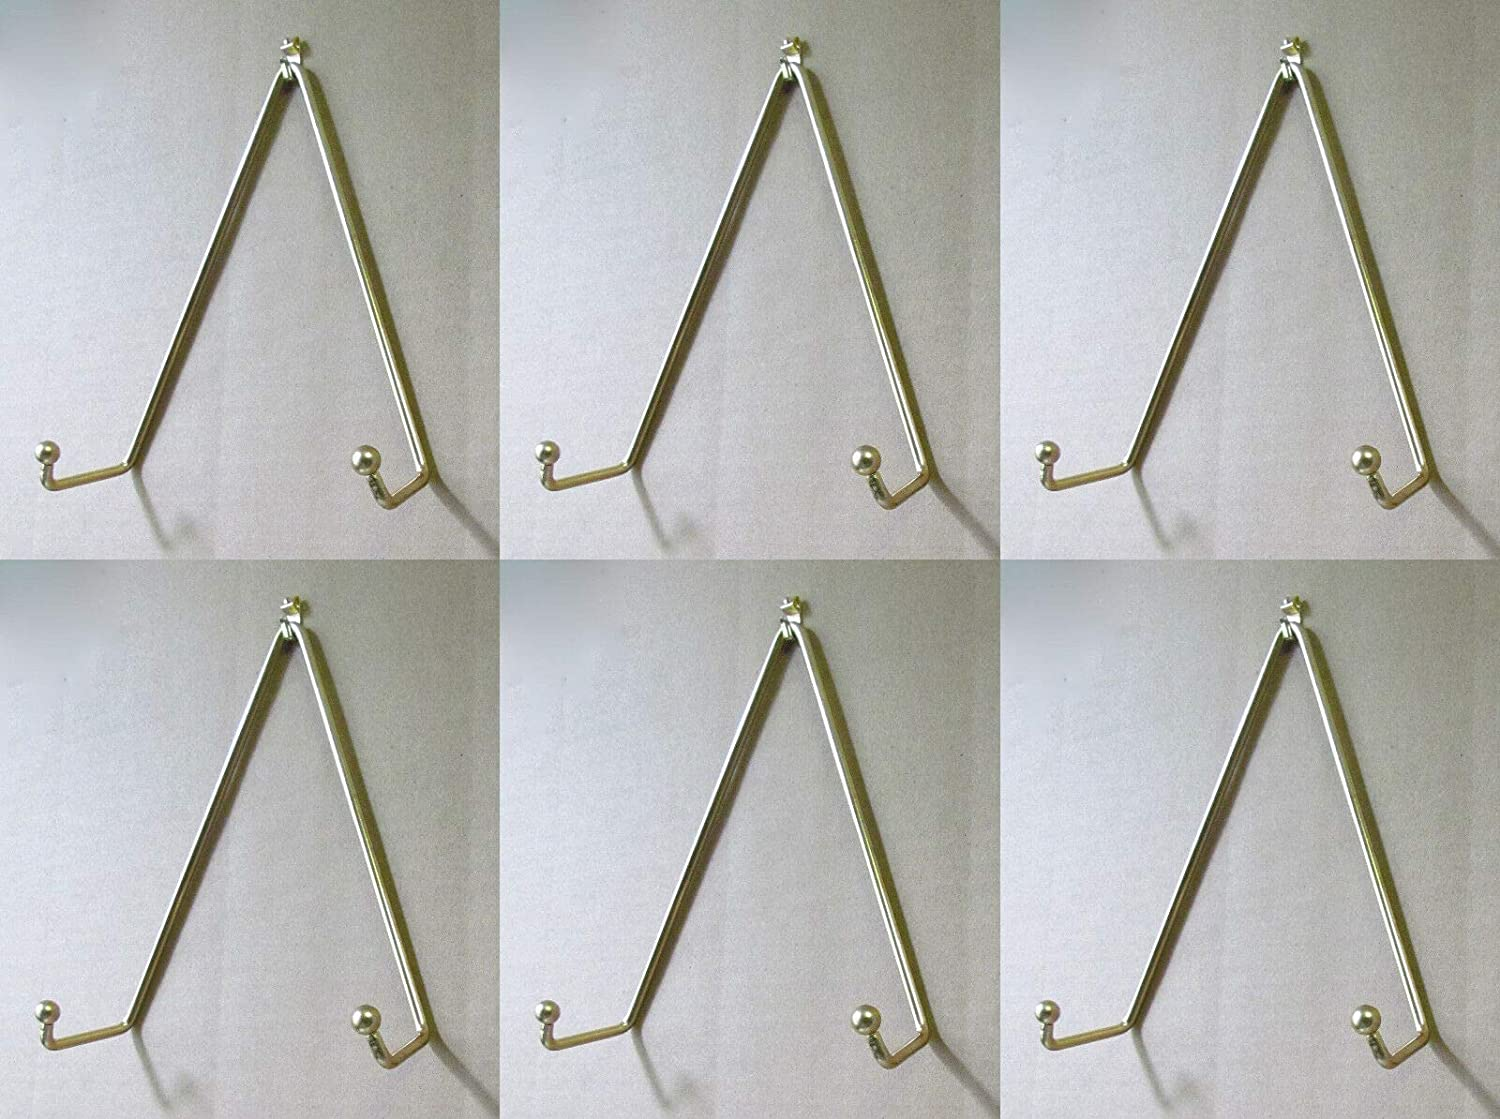 Brass Set of wholesale 6 Plate Hangers Displays Max 80% OFF Size Wall Plates t on 11